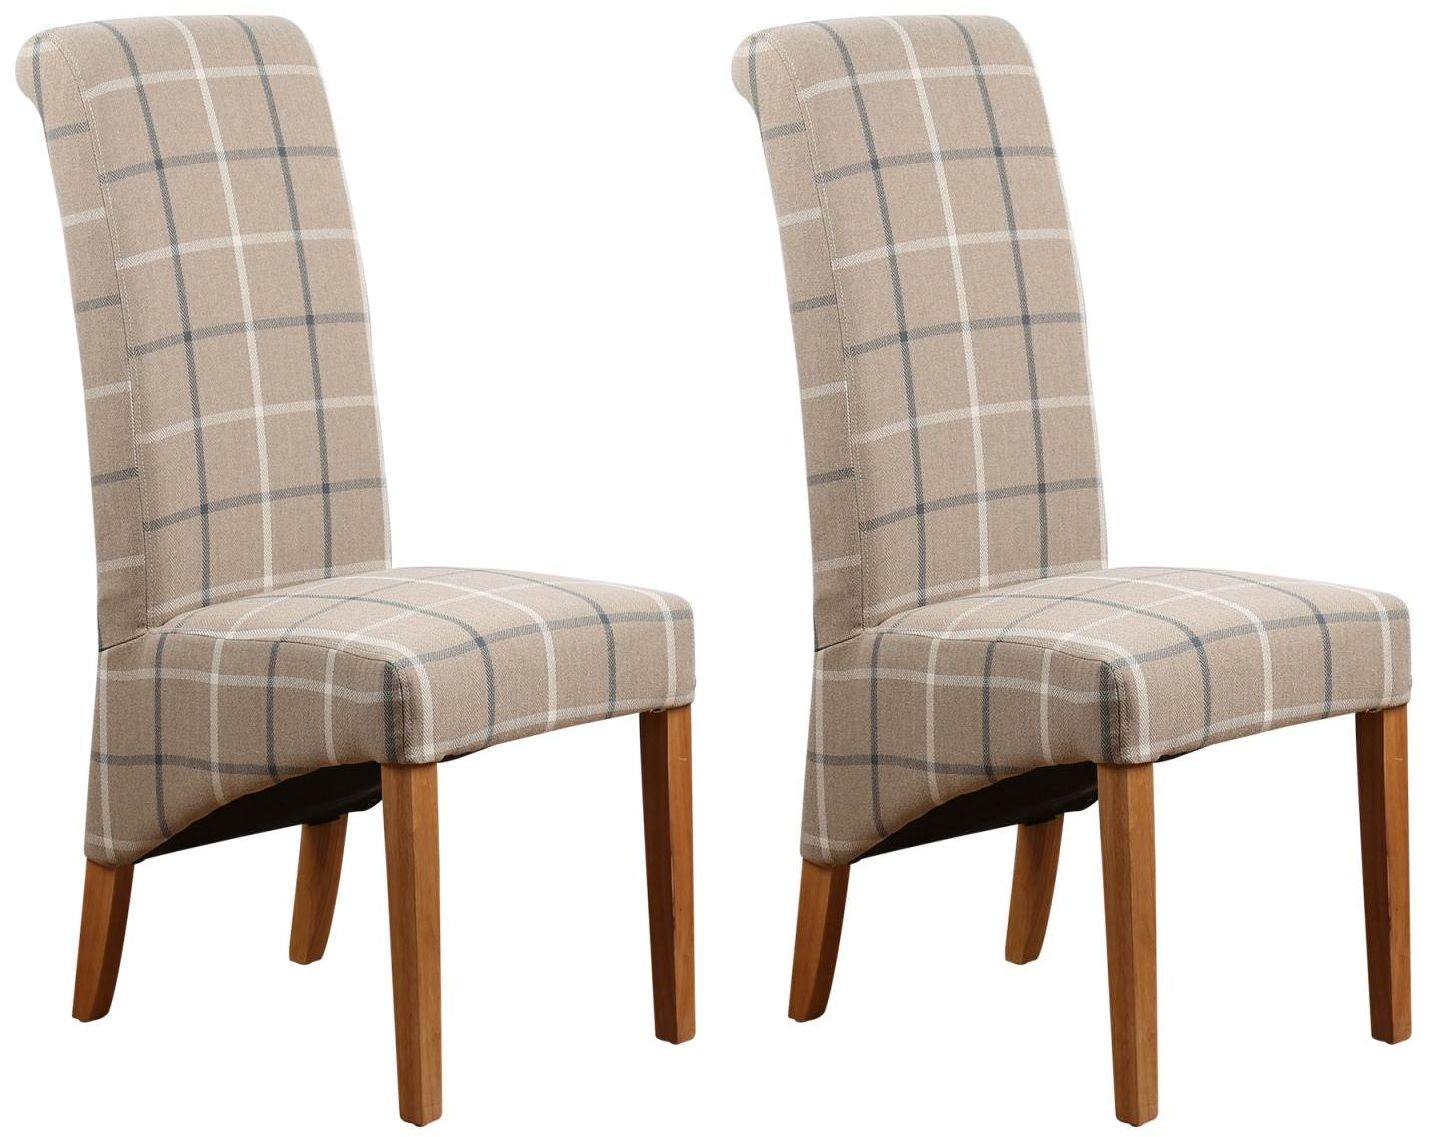 Mull latte fabric dining chair pair